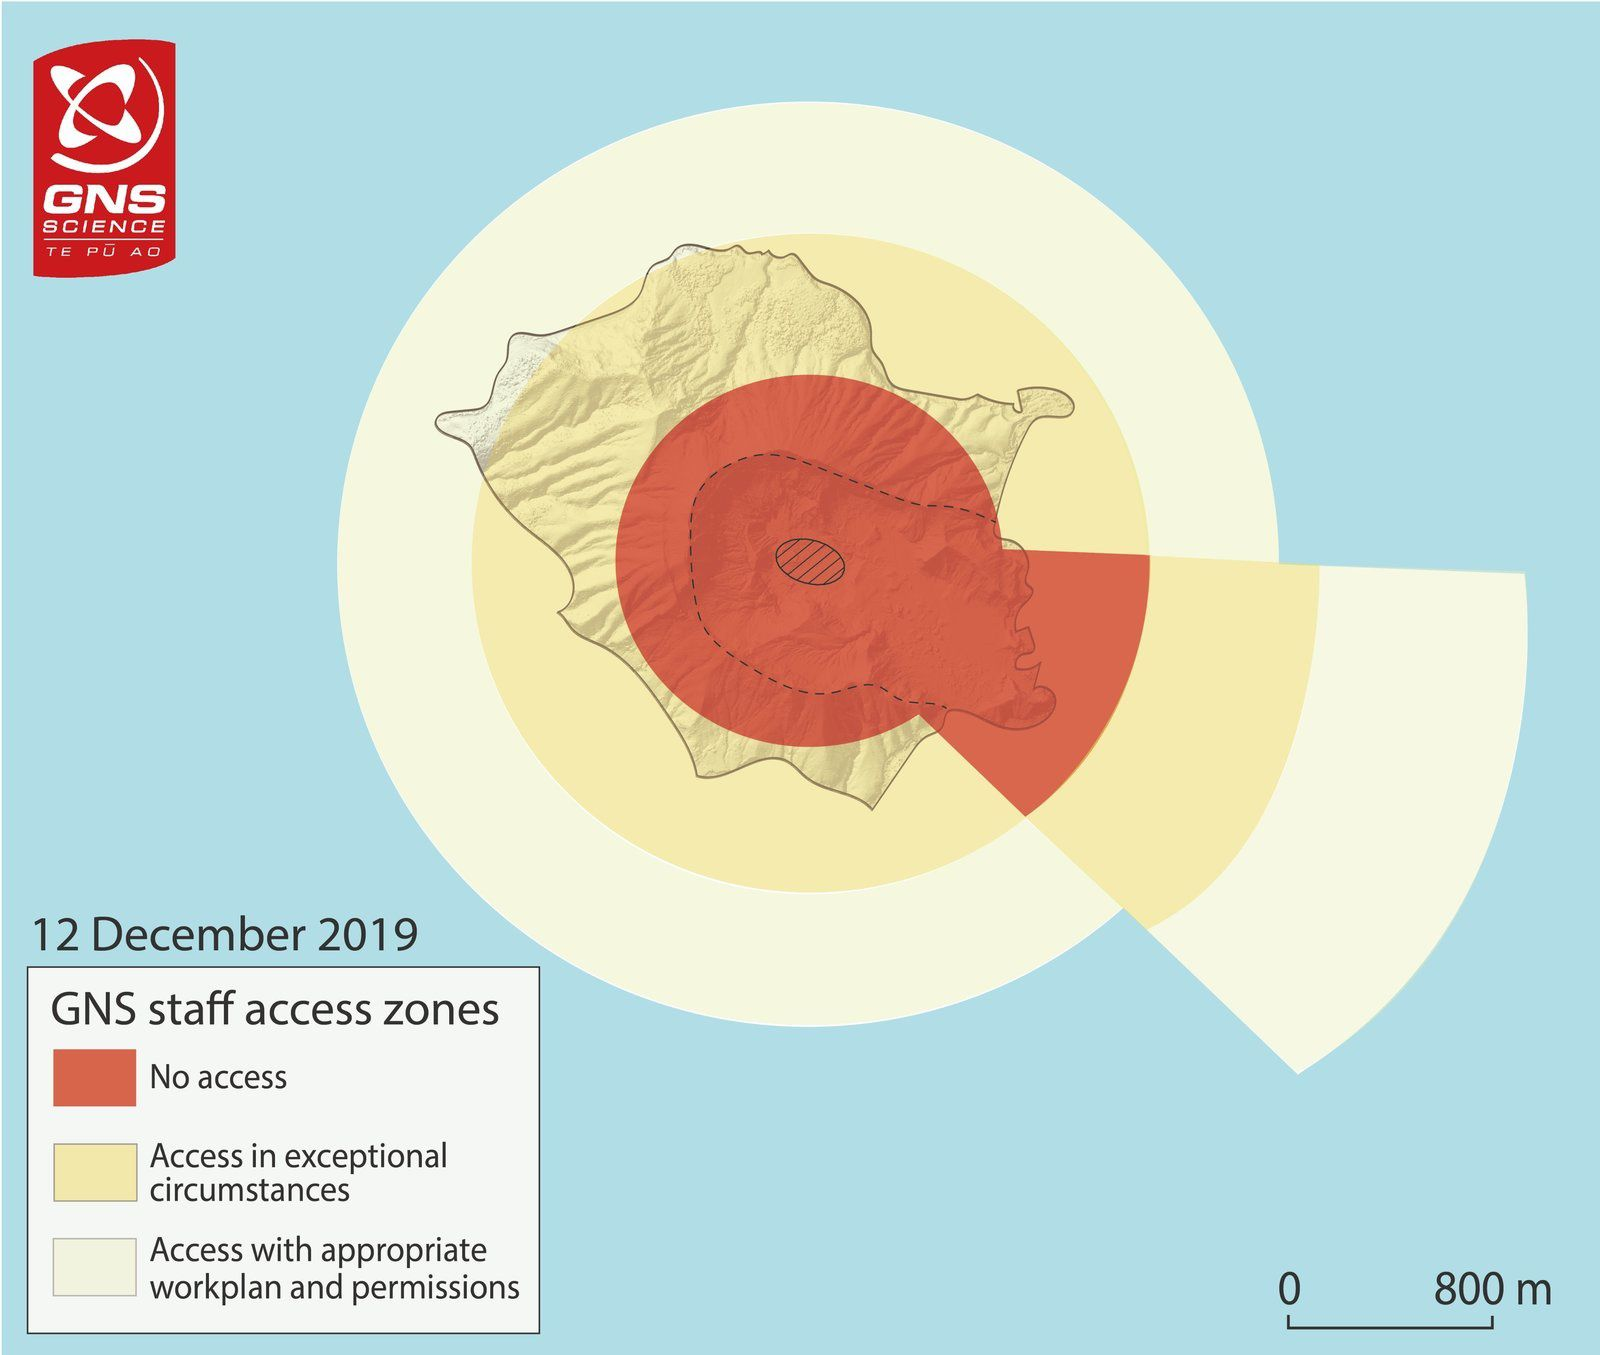 White Island - 12.12.2019 - GNS staff access zones